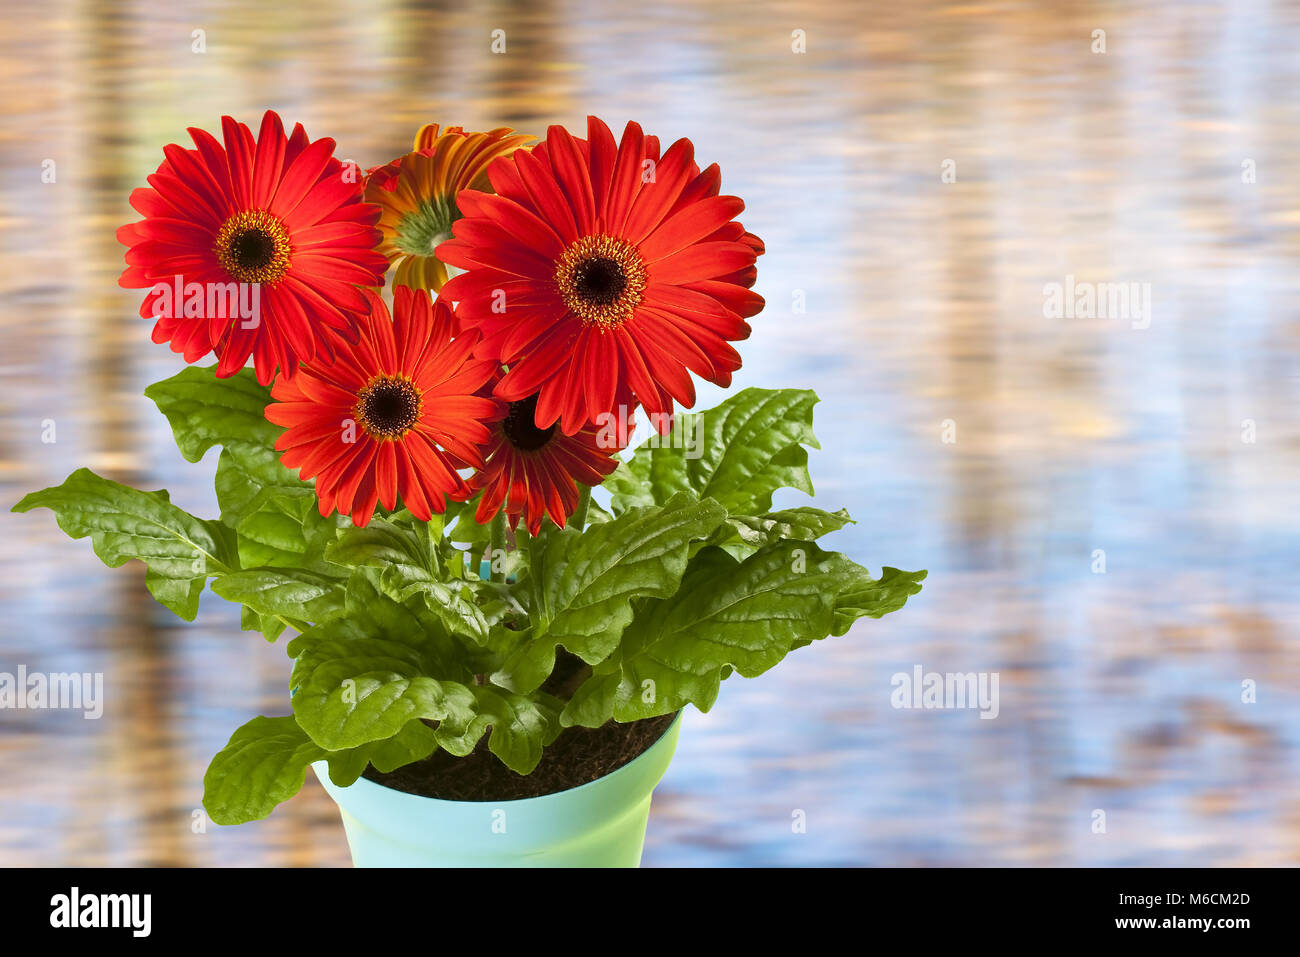 Red Gerbera in the Planter on the Unfocused Background - Stock Image